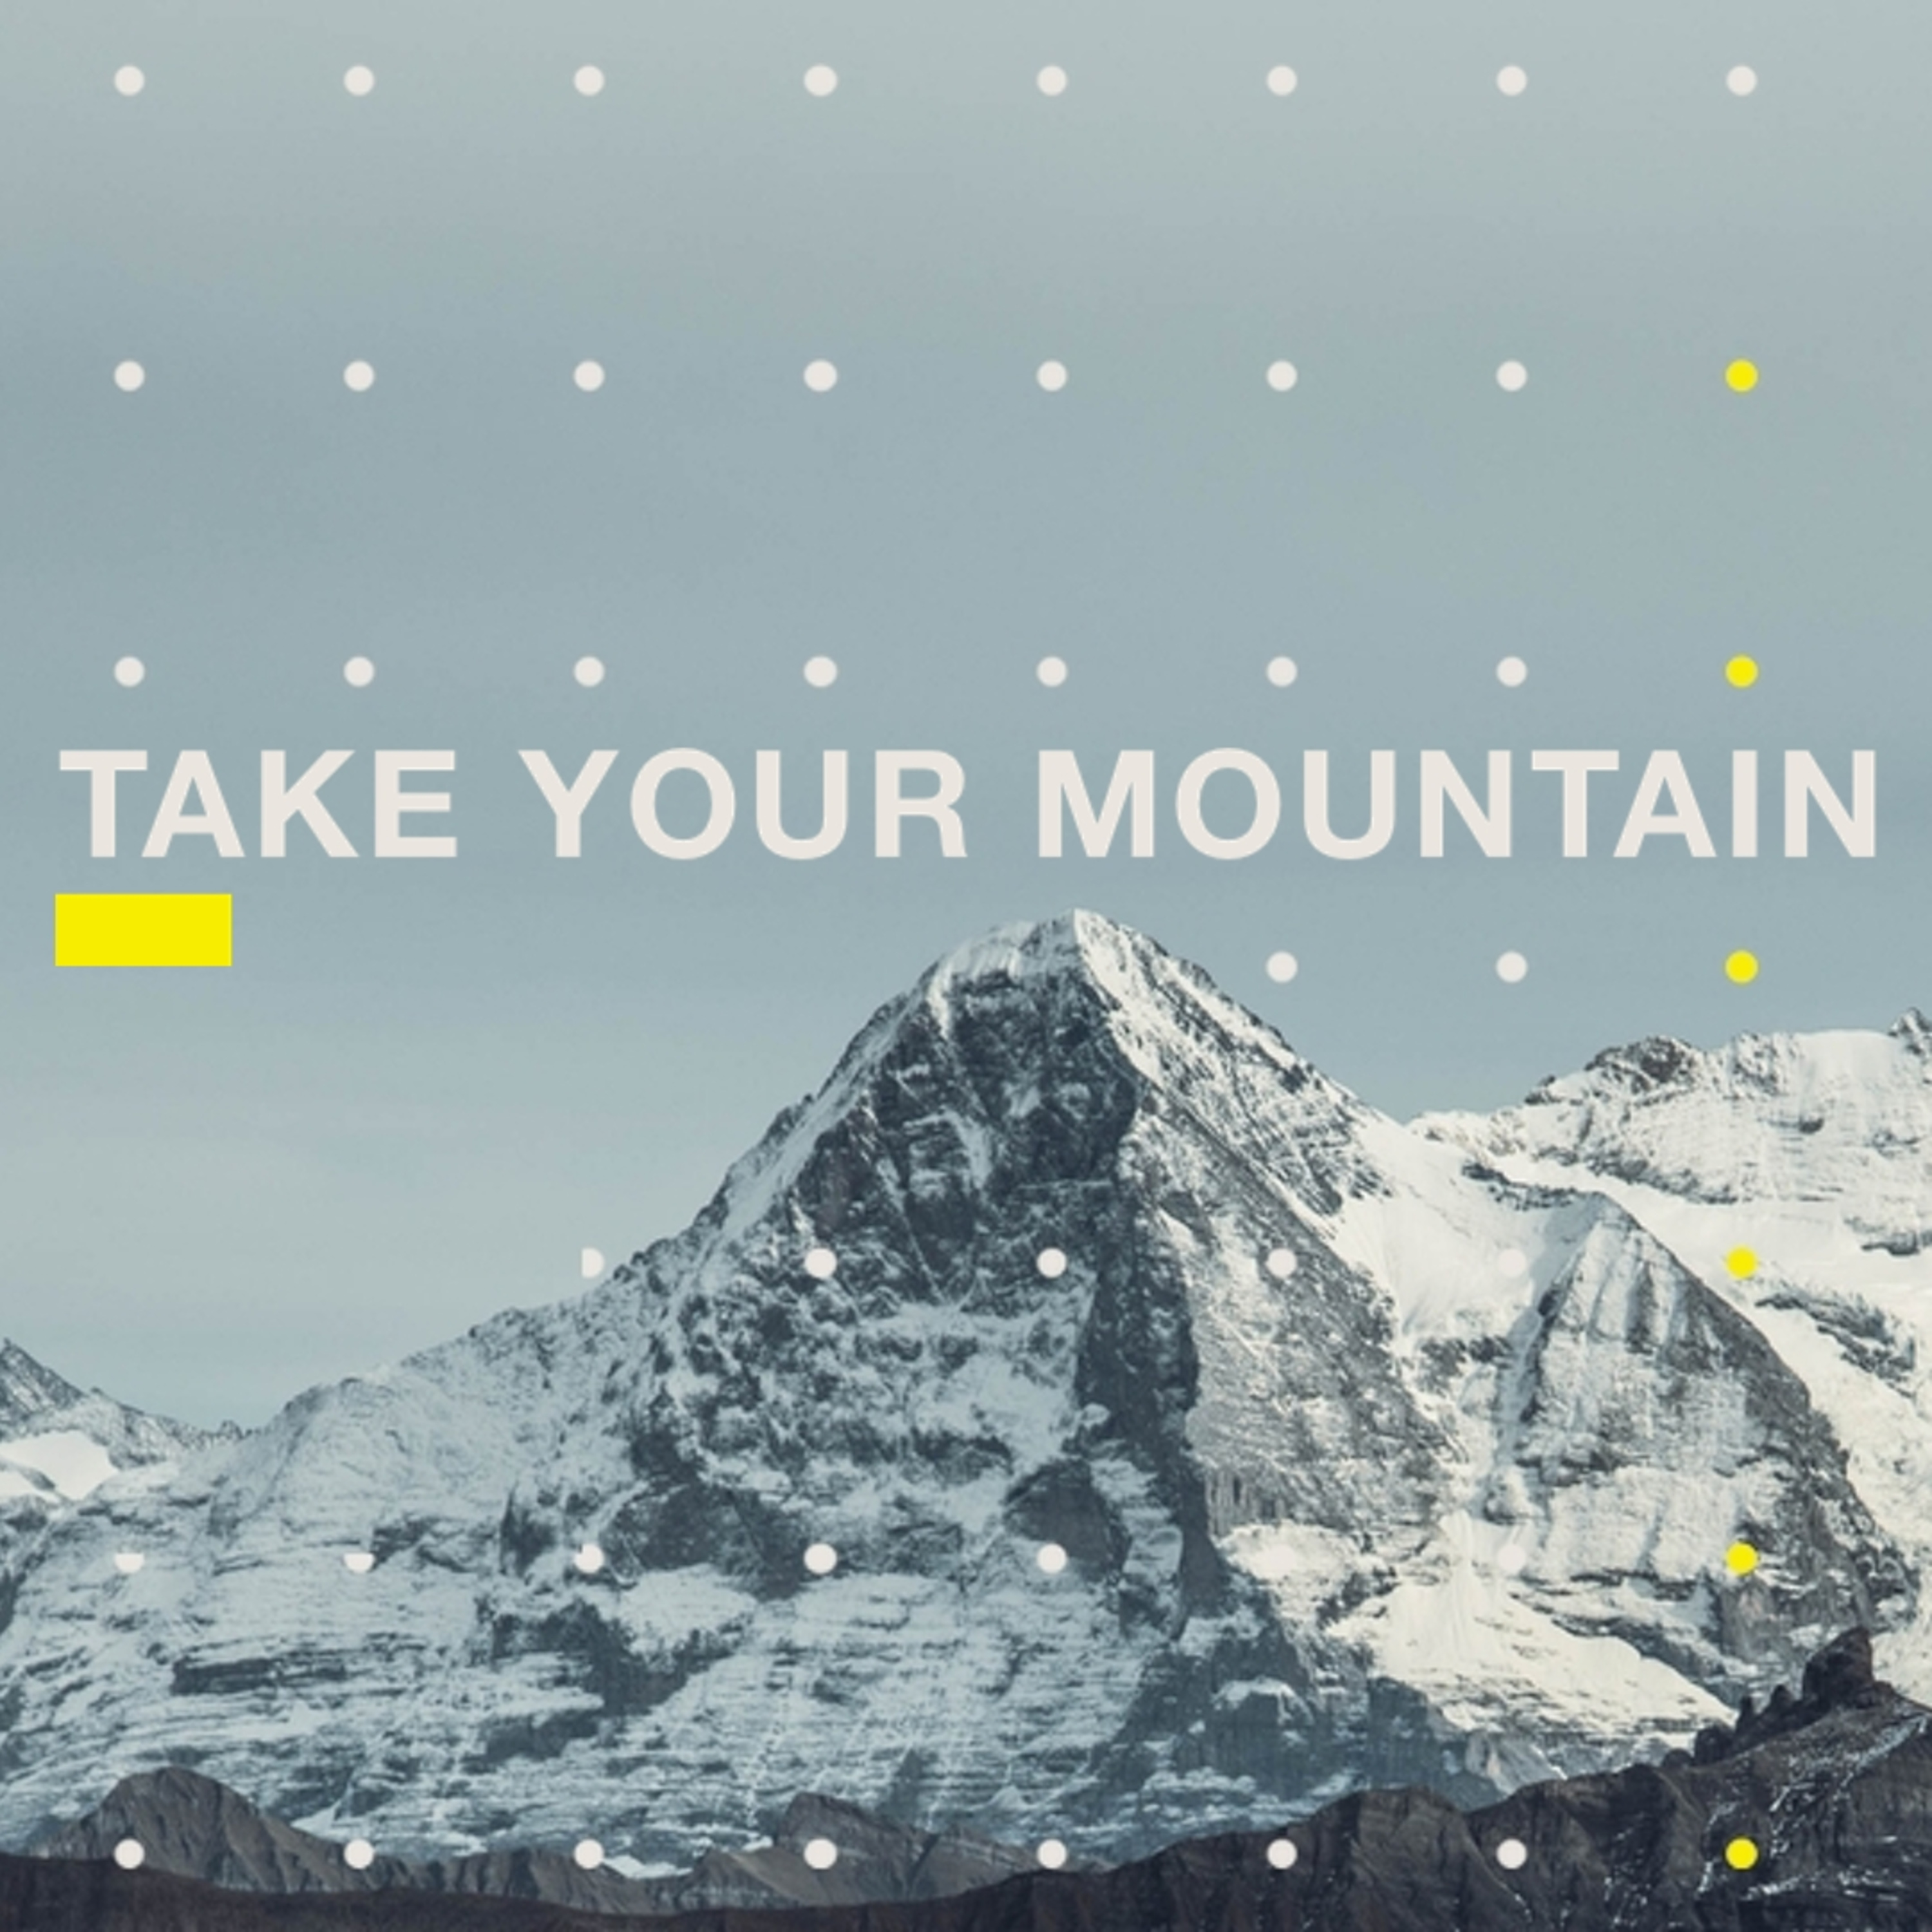 Take Your Mountain | Week 1 | MISSIONARY MANDATE